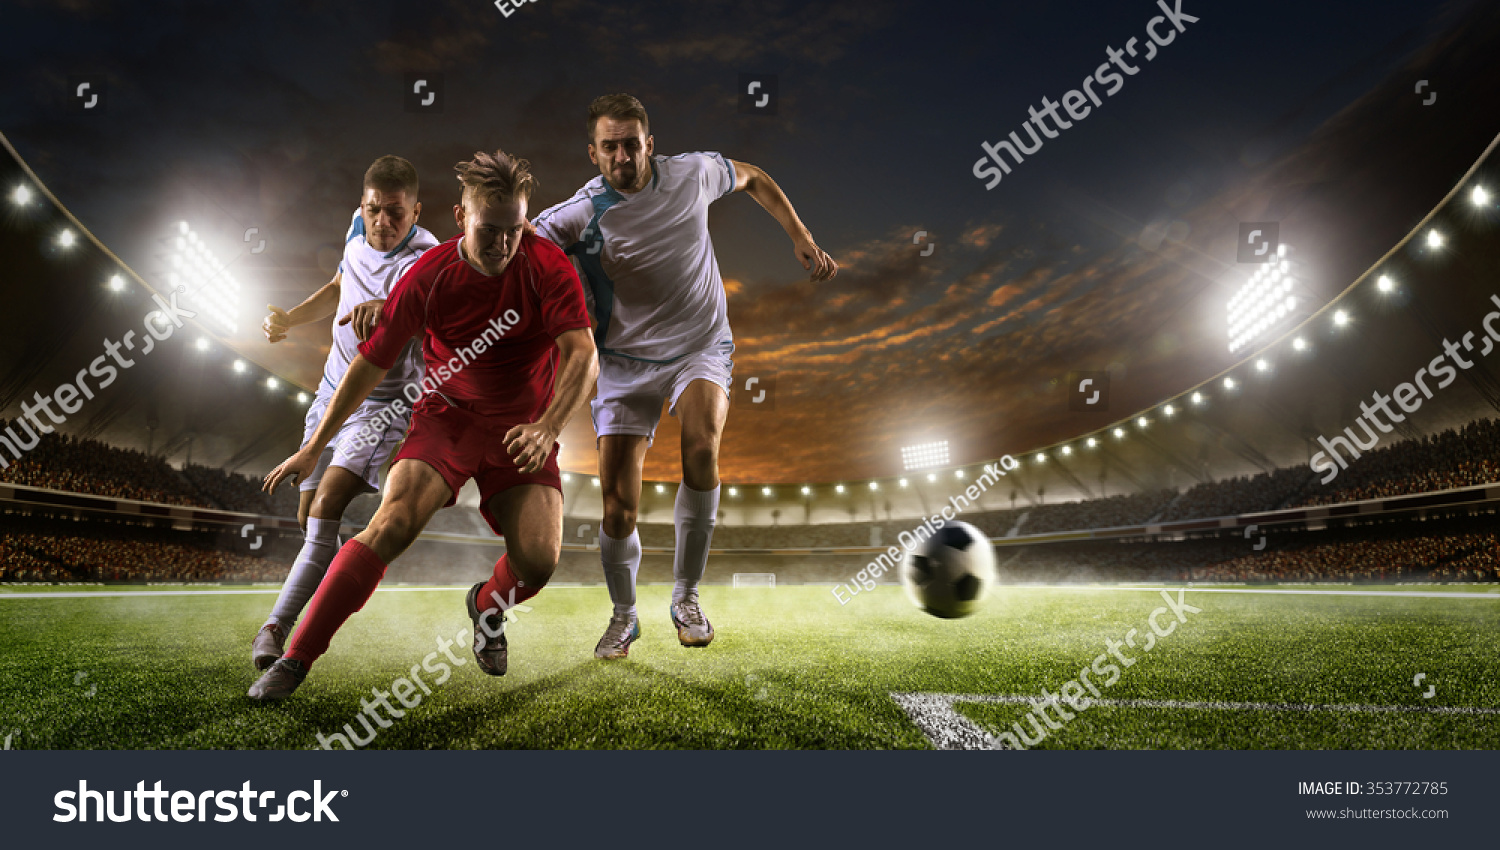 Soccer Backgrounds Stock Photo: Soccer Players Action On Sunset Stadium Stock Photo